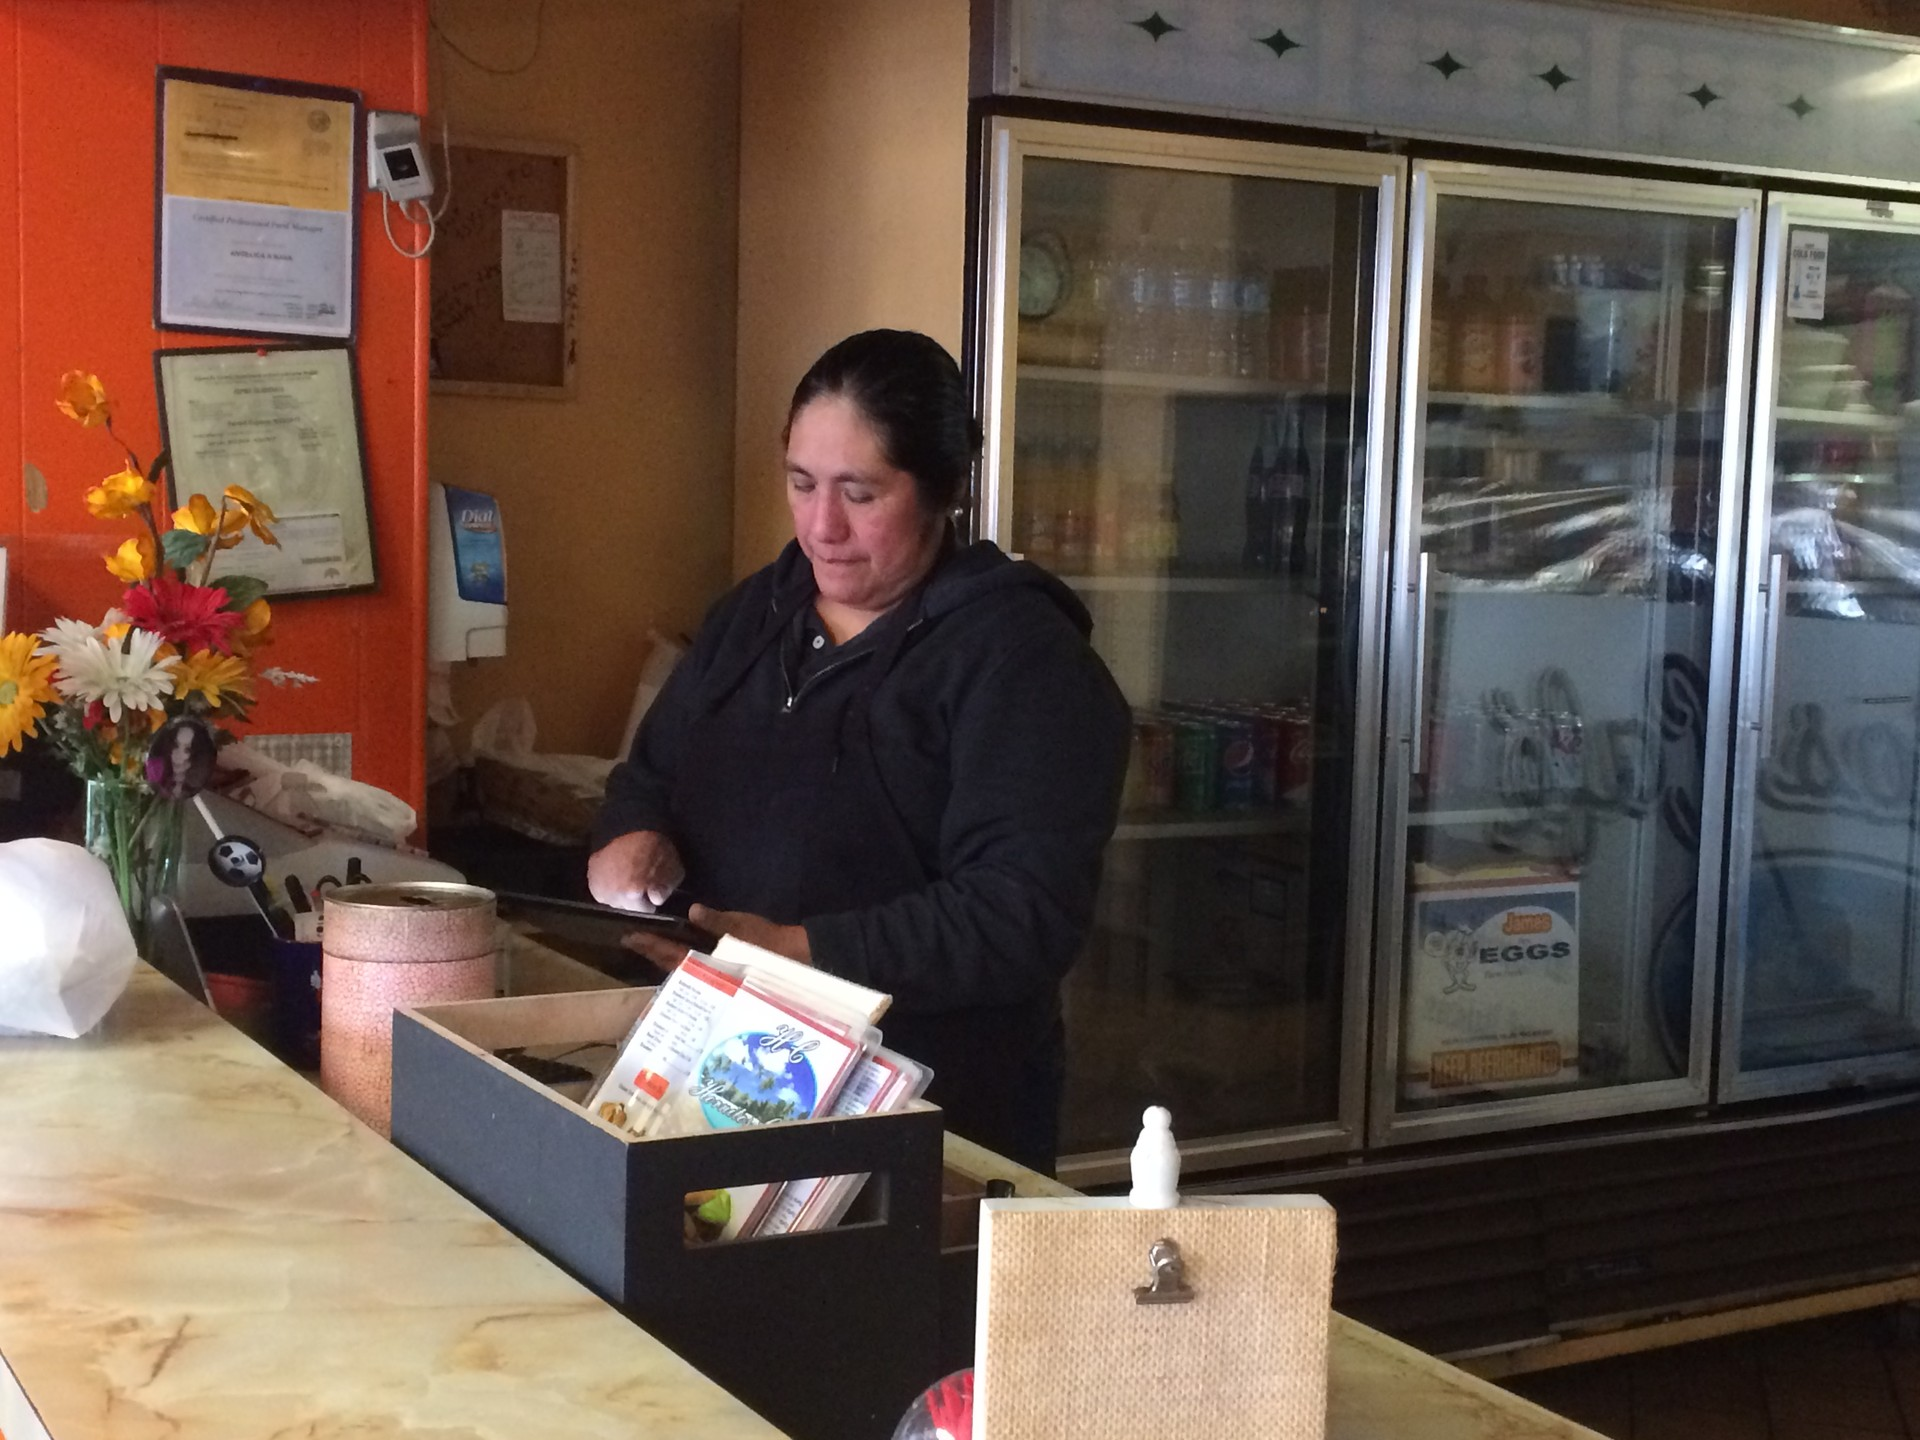 Edith Gallegos works the register at Hornitos Cafe, blocks away from the Ghost Ship warehouse fire. Gallegos said her clientele plummeted during recovery efforts at the fire site, which closed nearby streets.